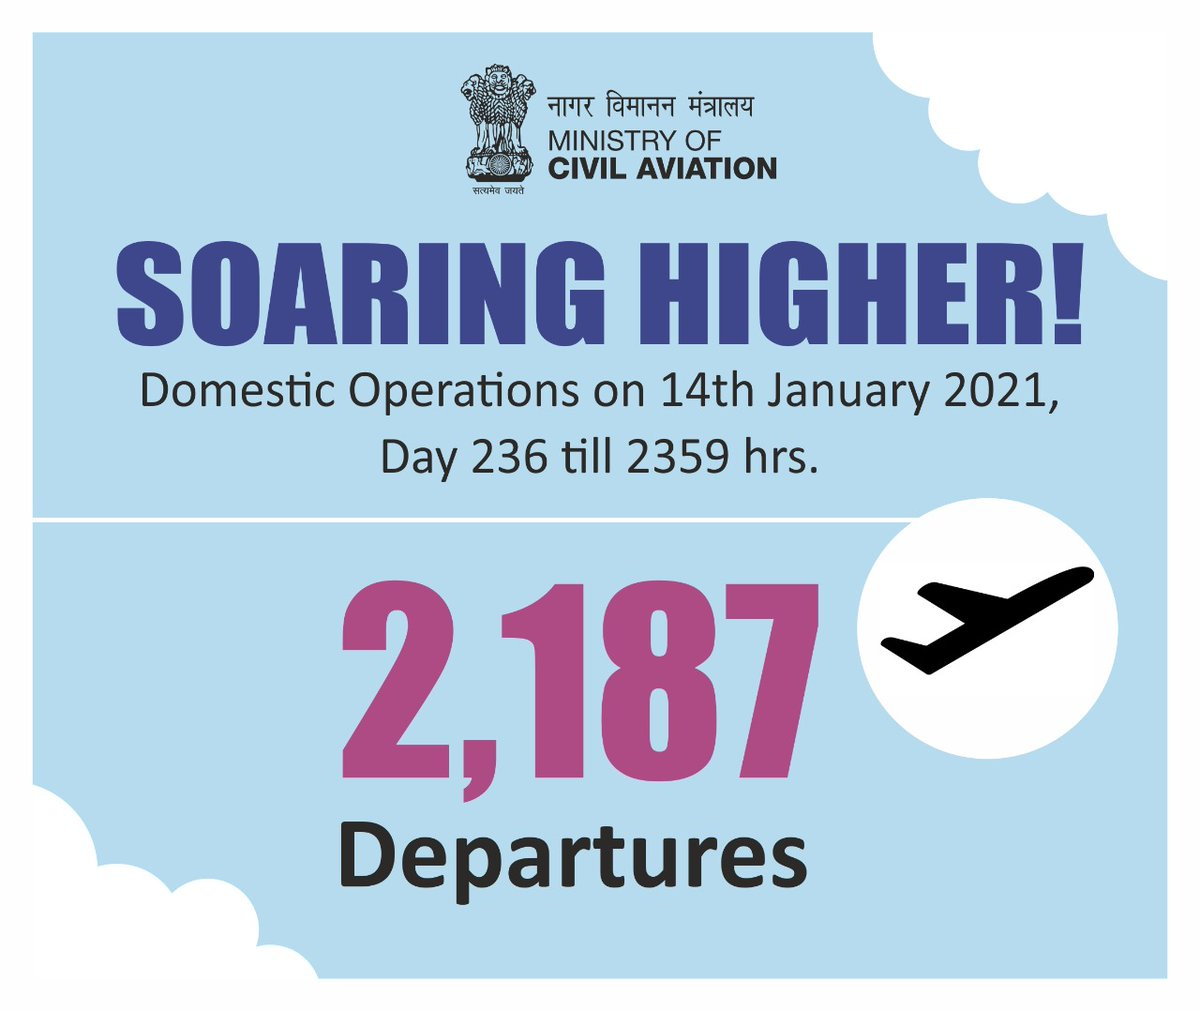 India soaring higher!  2187 flight departures took place across the country on 14th January. Aviation operations continue to soar! #SabUdenSabJuden #IndiaFliesHigh